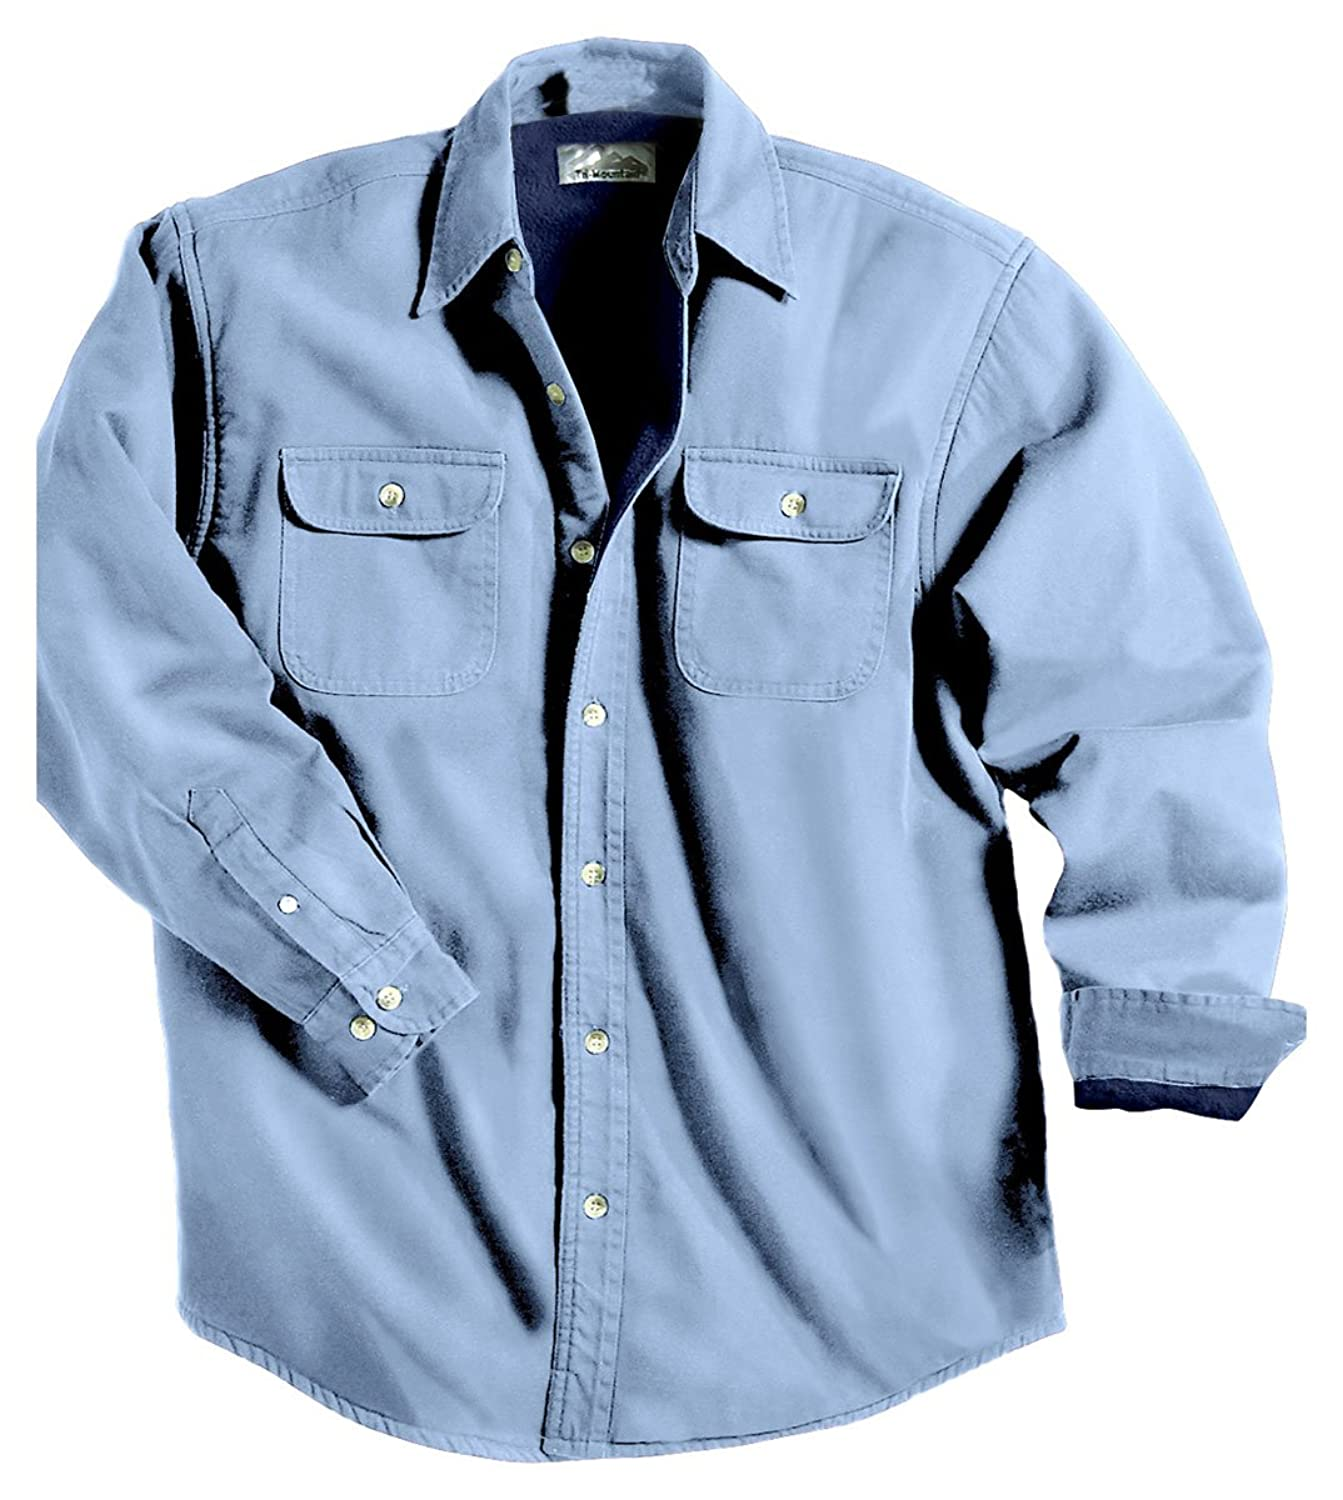 Fleece Lined Denim Shirt Jacket - Best Shirt 2017